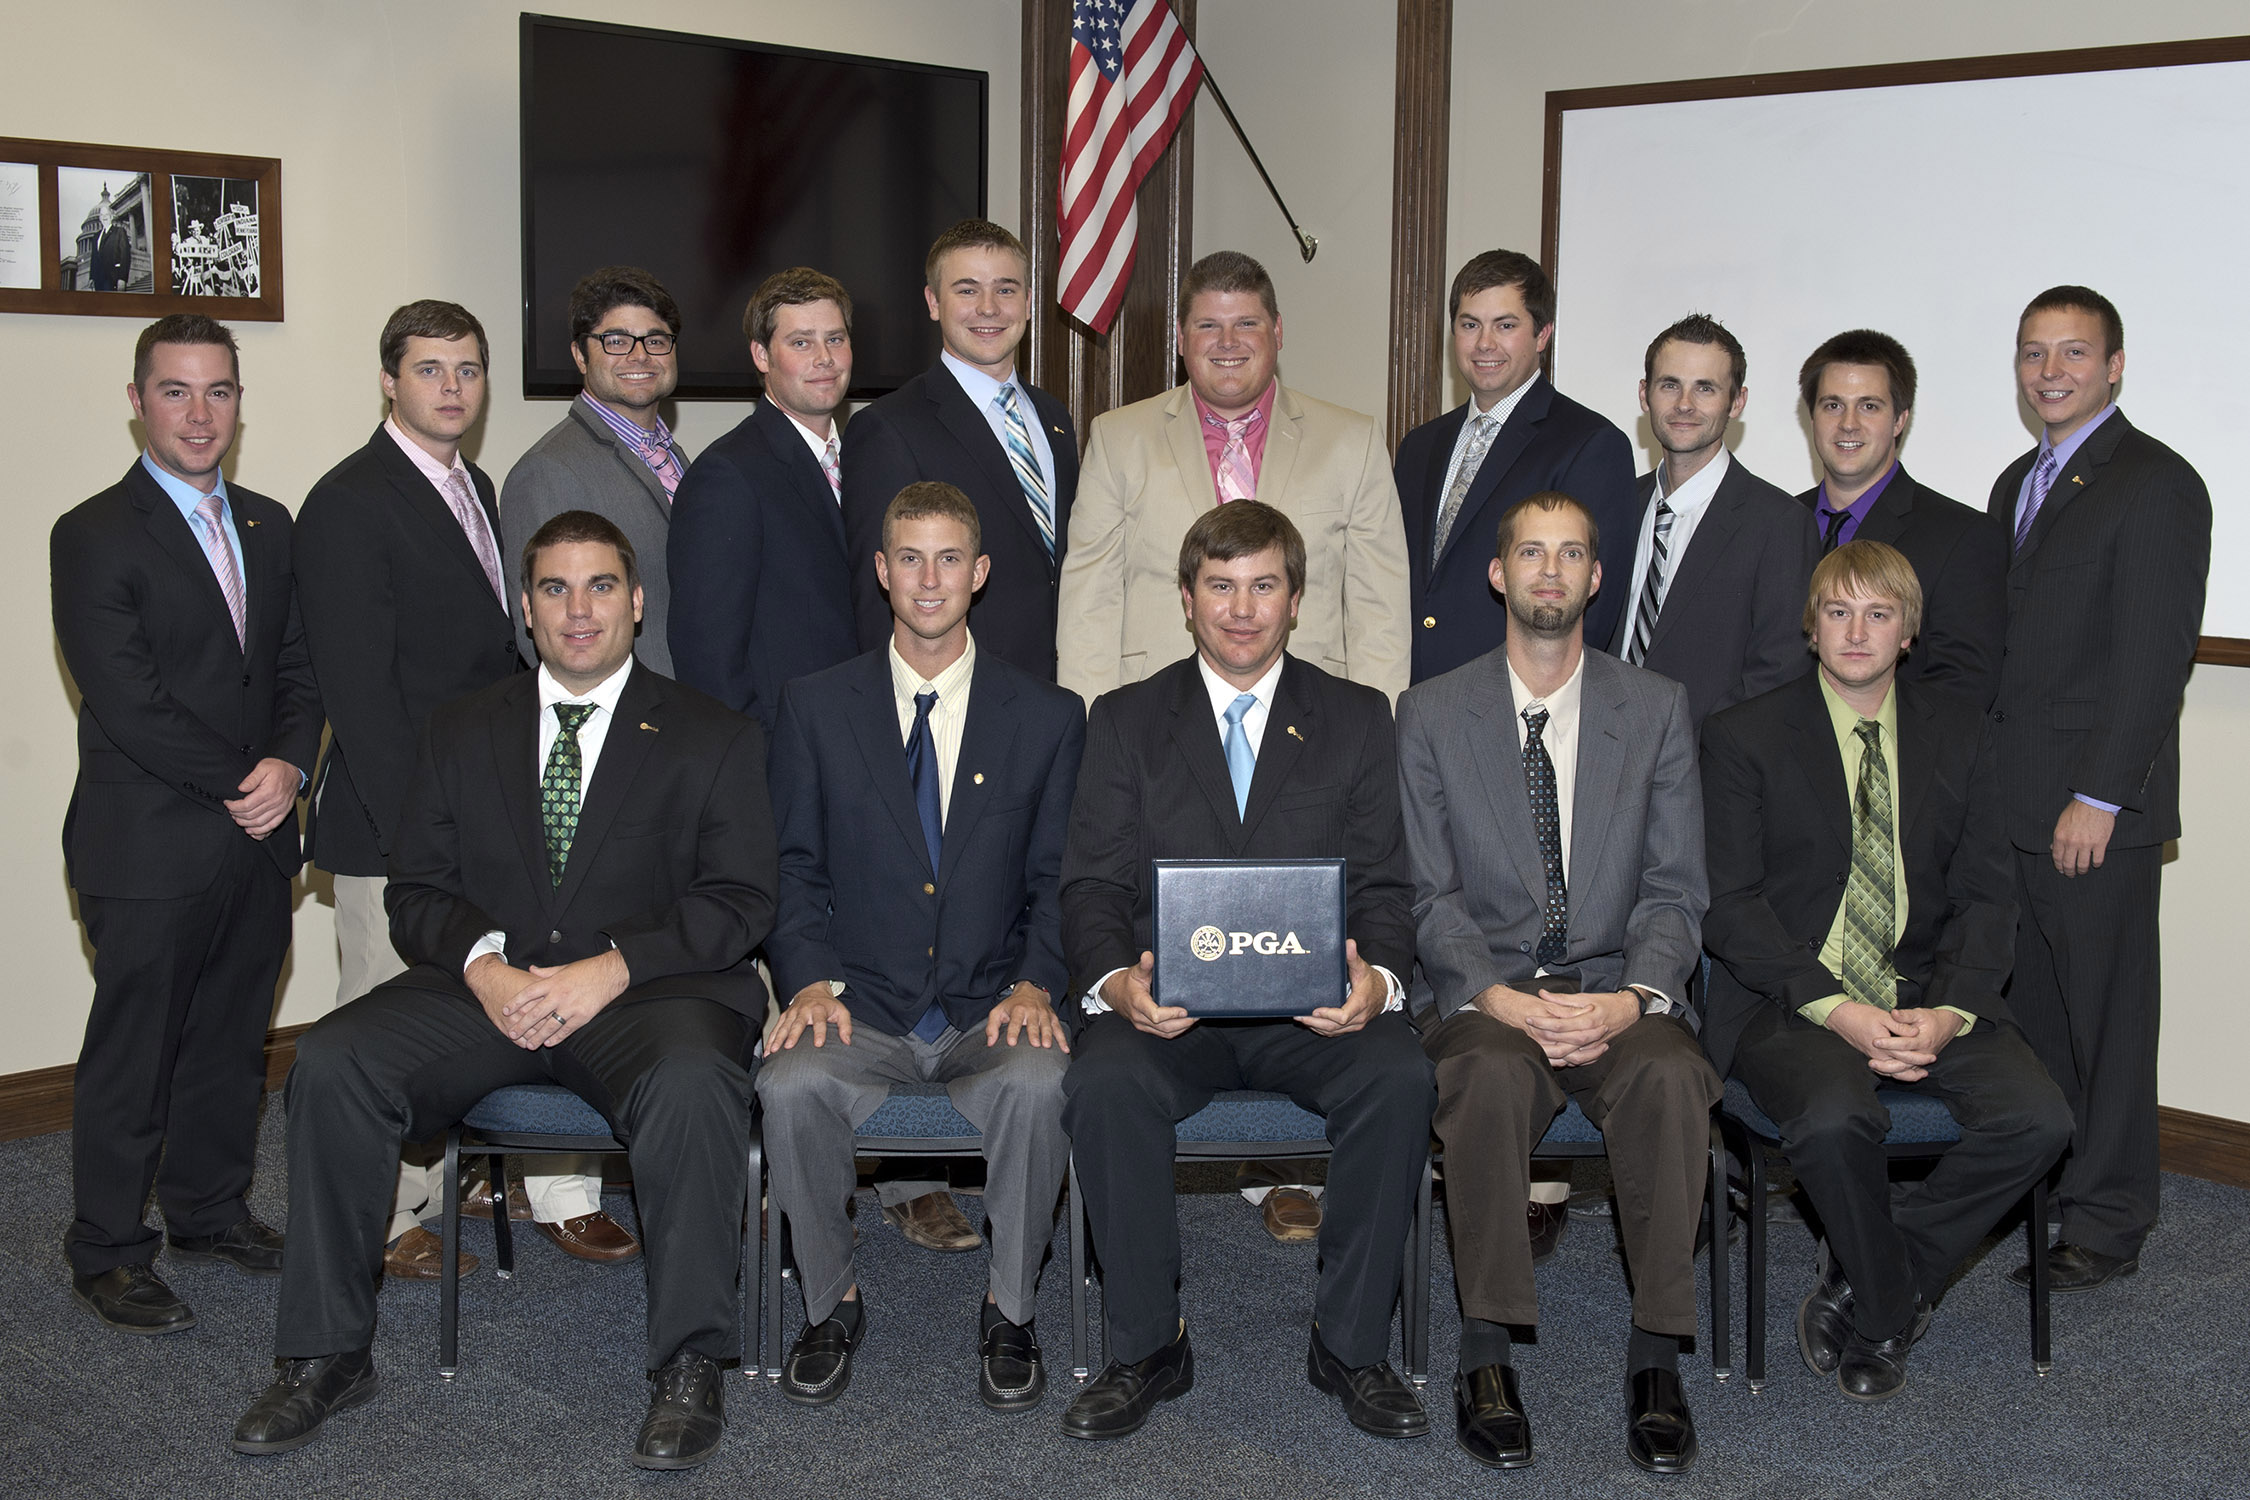 The University of Central Oklahoma's College of Business will graduate its first class of students under Central's new PGA golf management program. The graduates include (back row, left to right) Jeff Elliott, Evan Williams, Jack Daneshmand, William Bones, Jacob Arnold, James Bowler, Jeff Klappenbach, Adam Miller, Bryson Howard, Trent White, (front row, left to right) Jeremey Brewer, Derek Franco, Justin Limon, Max Matthes, and Benjamin Howard.